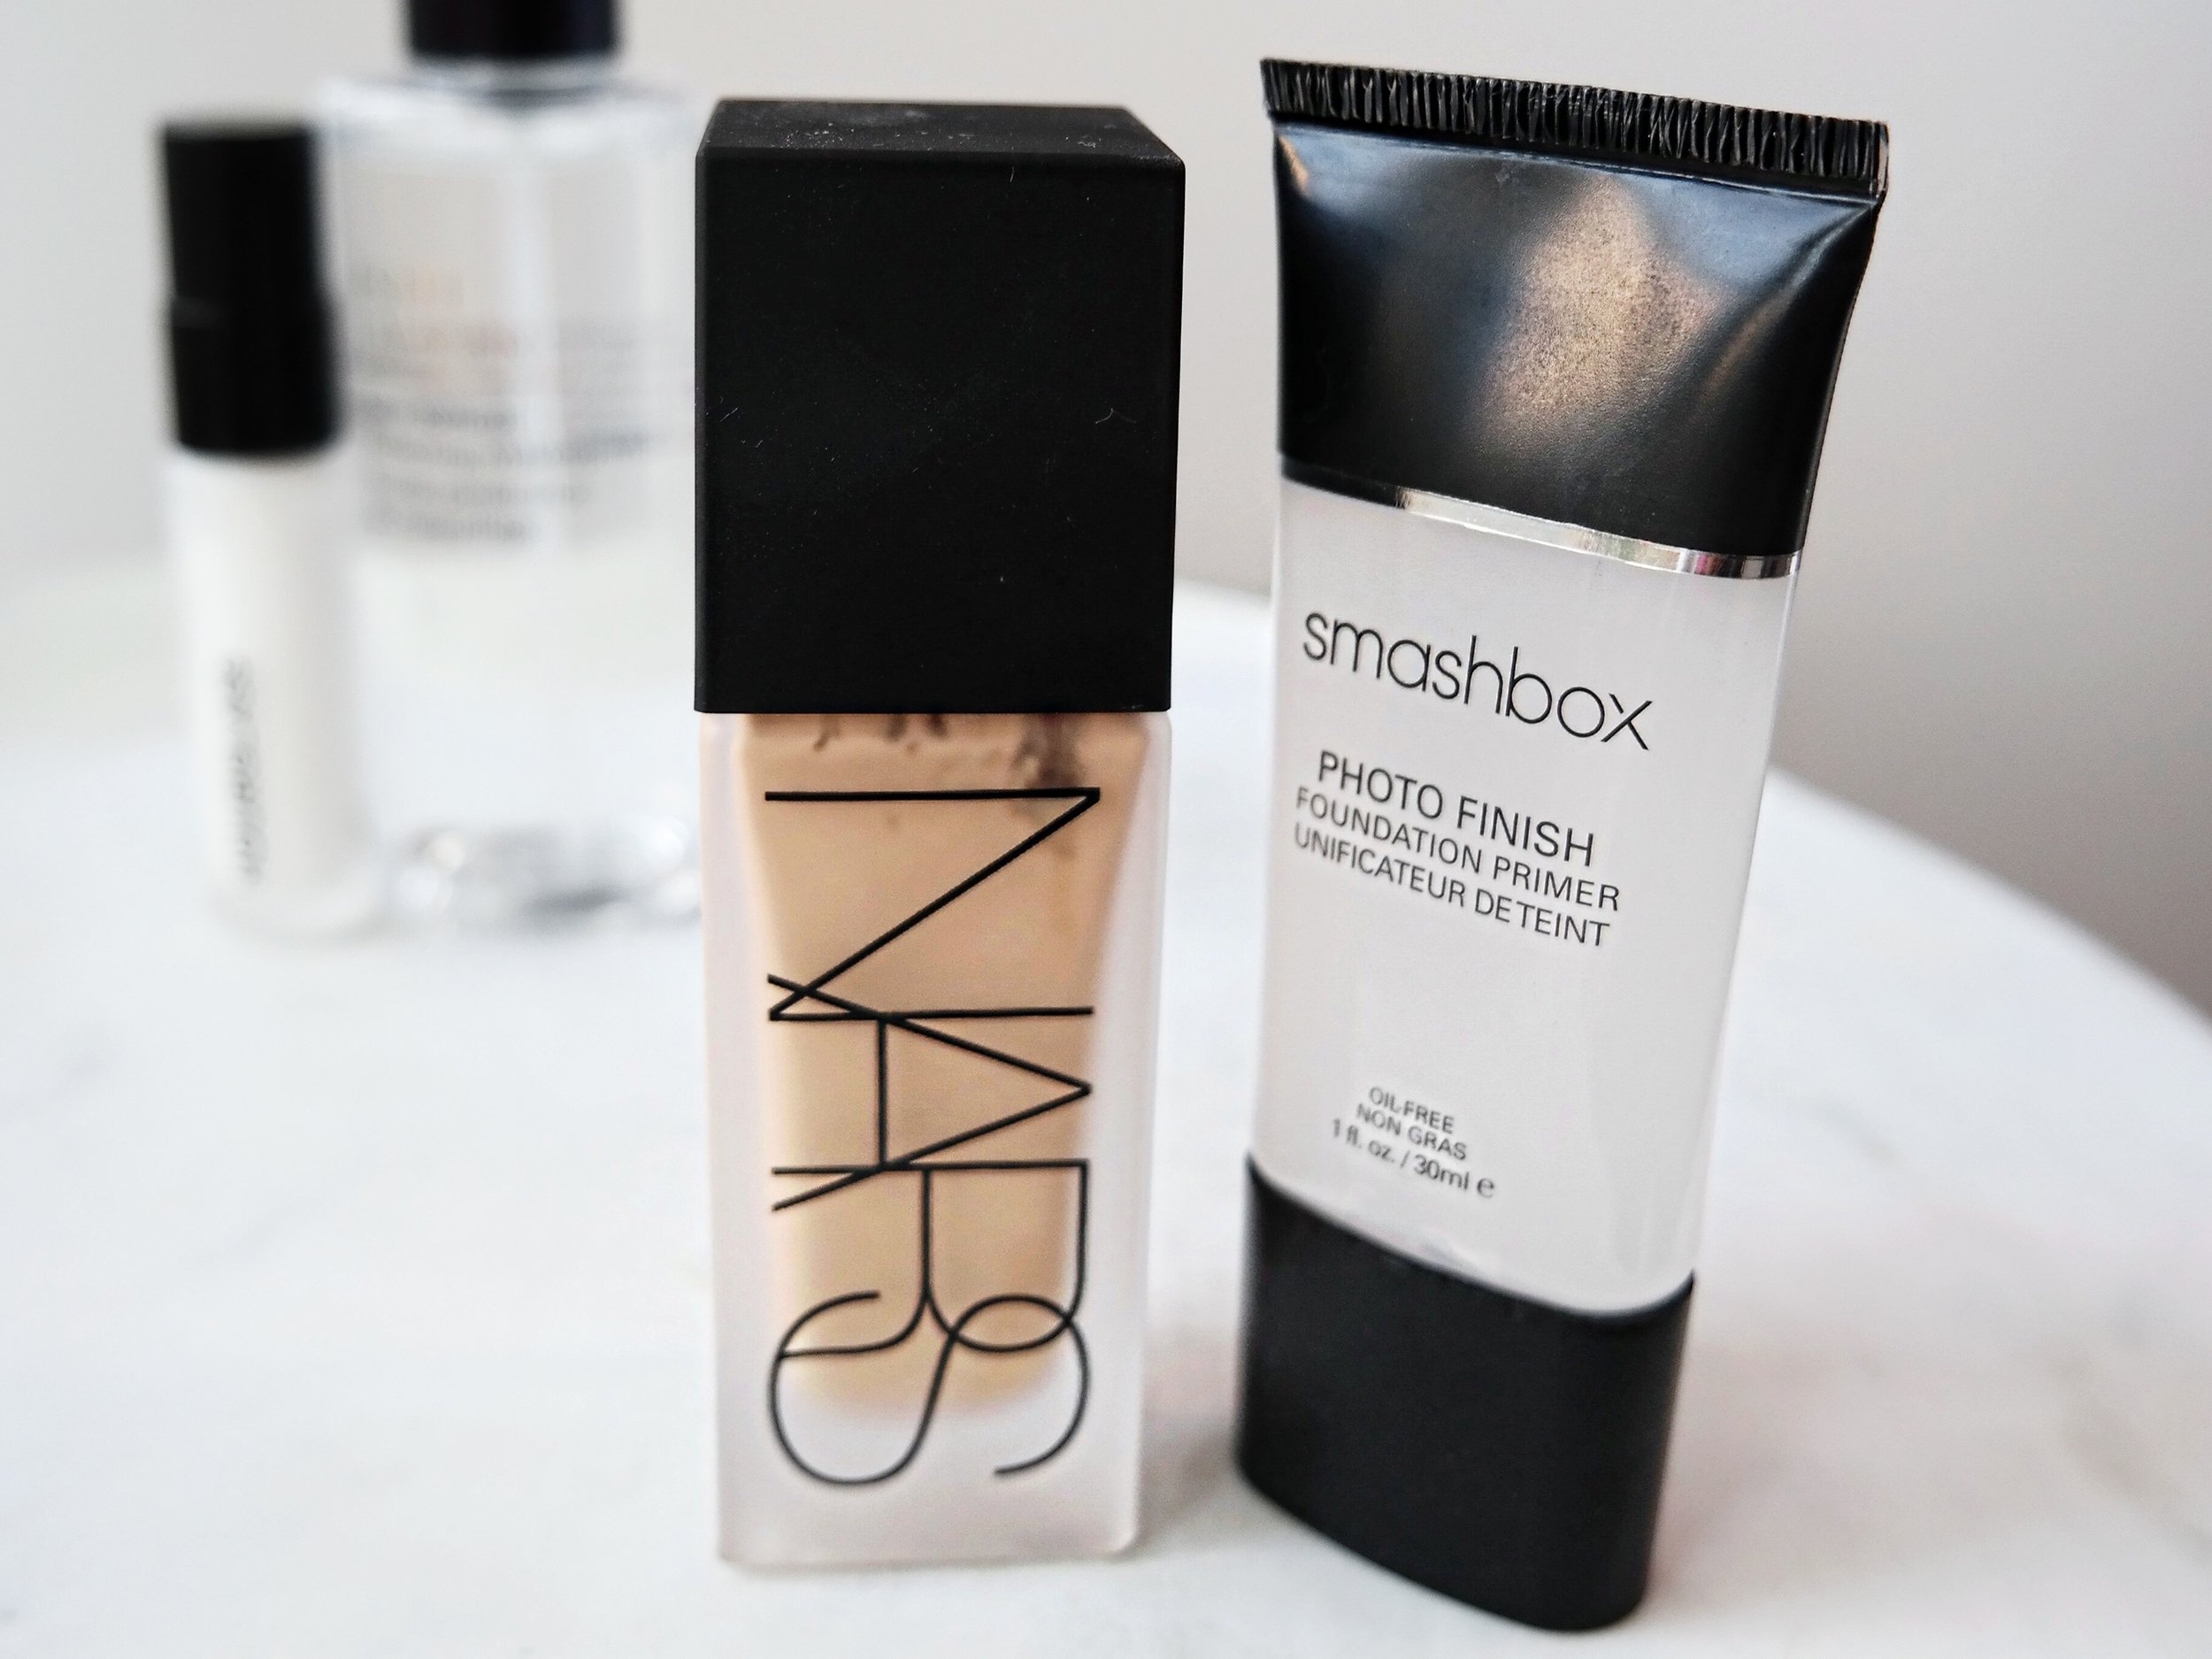 NARS All Day Luminous Weightless Foundation and Smashbox Photo Finish Primer Review